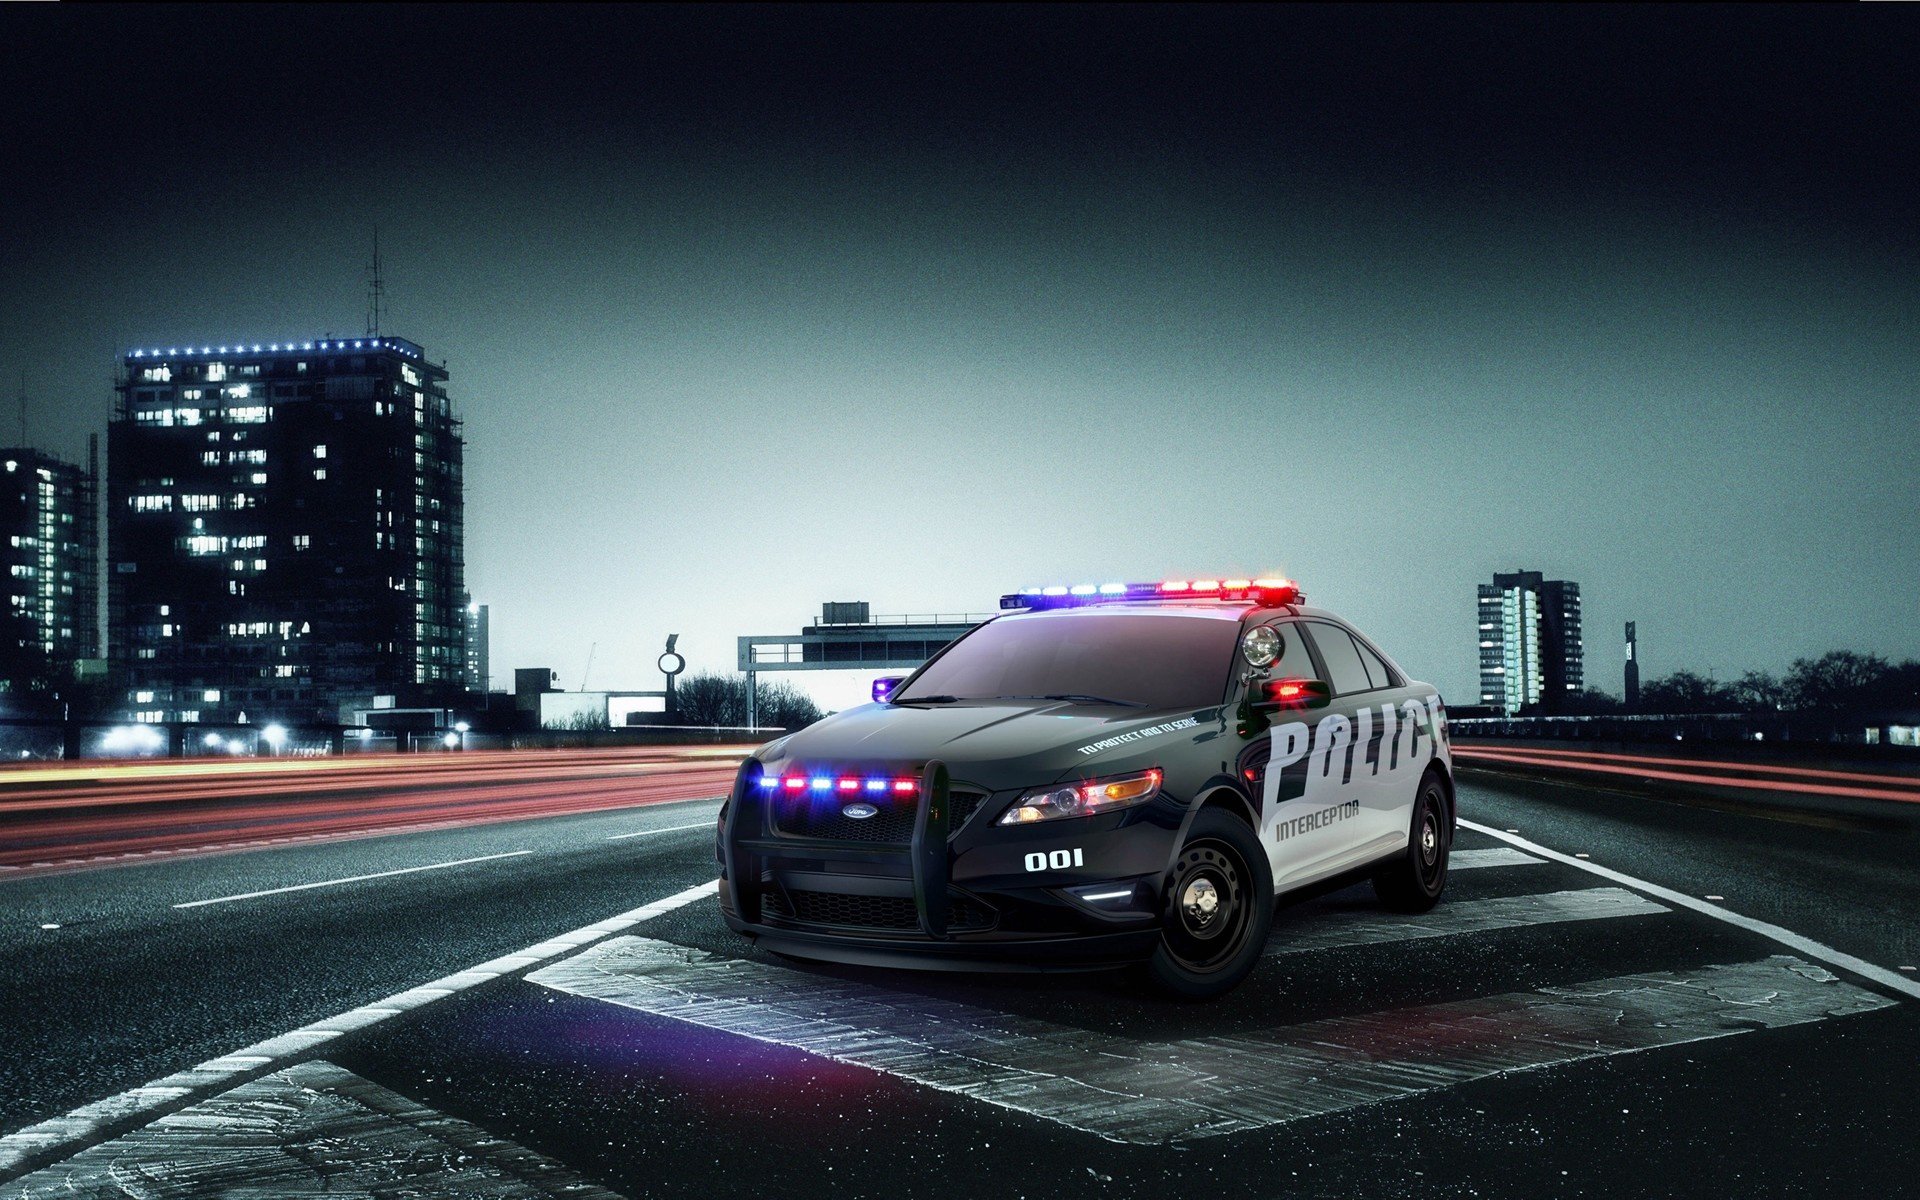 wallpapers screen savers police screensavers ford interceptor 1920x1200